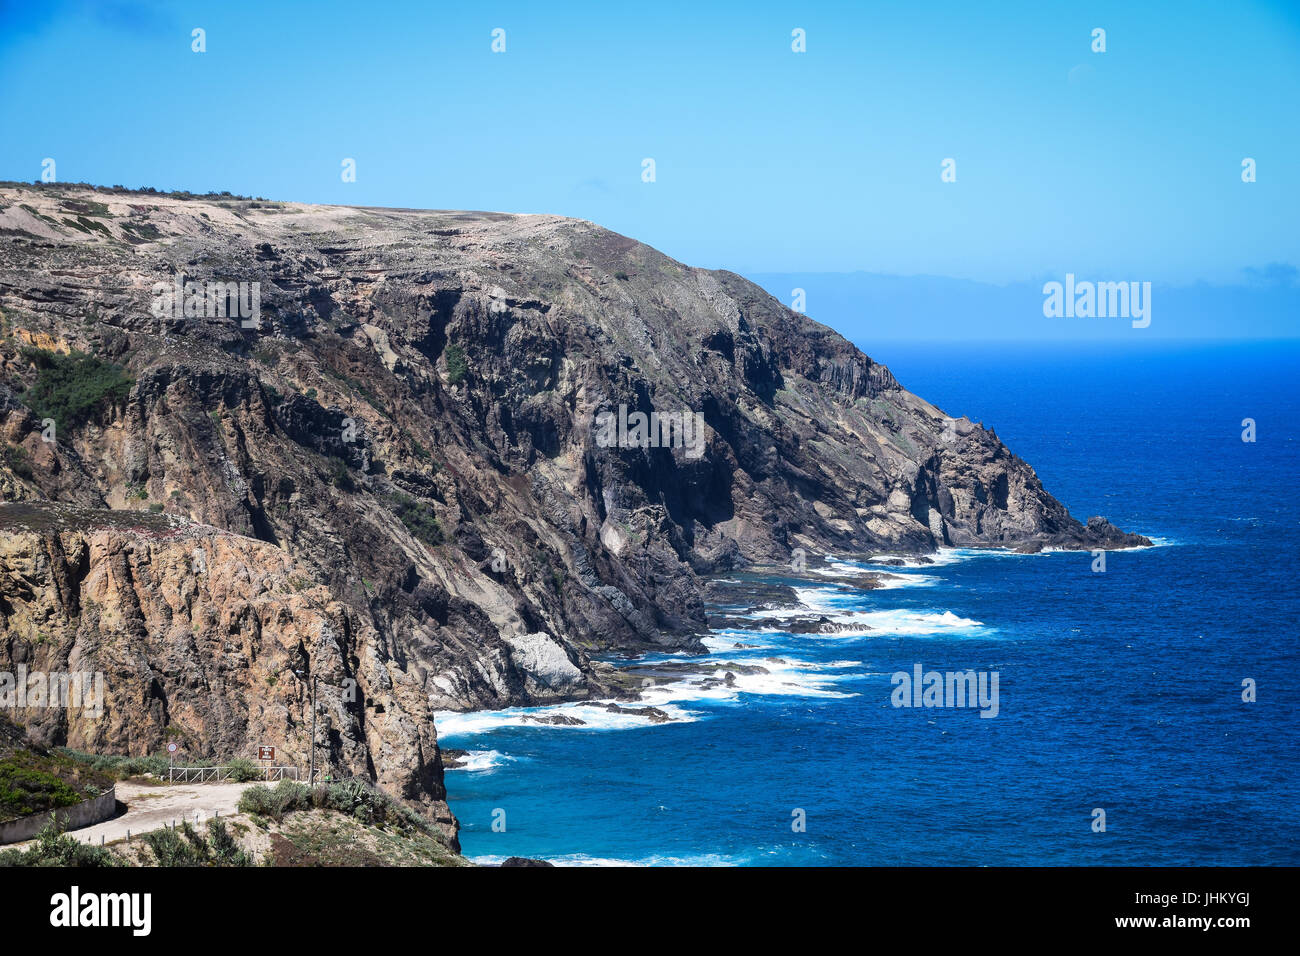 Rocky coastline at Fonte da Areia on the northern coast of Porto Santo Island, Madeira, Portugal - Stock Image